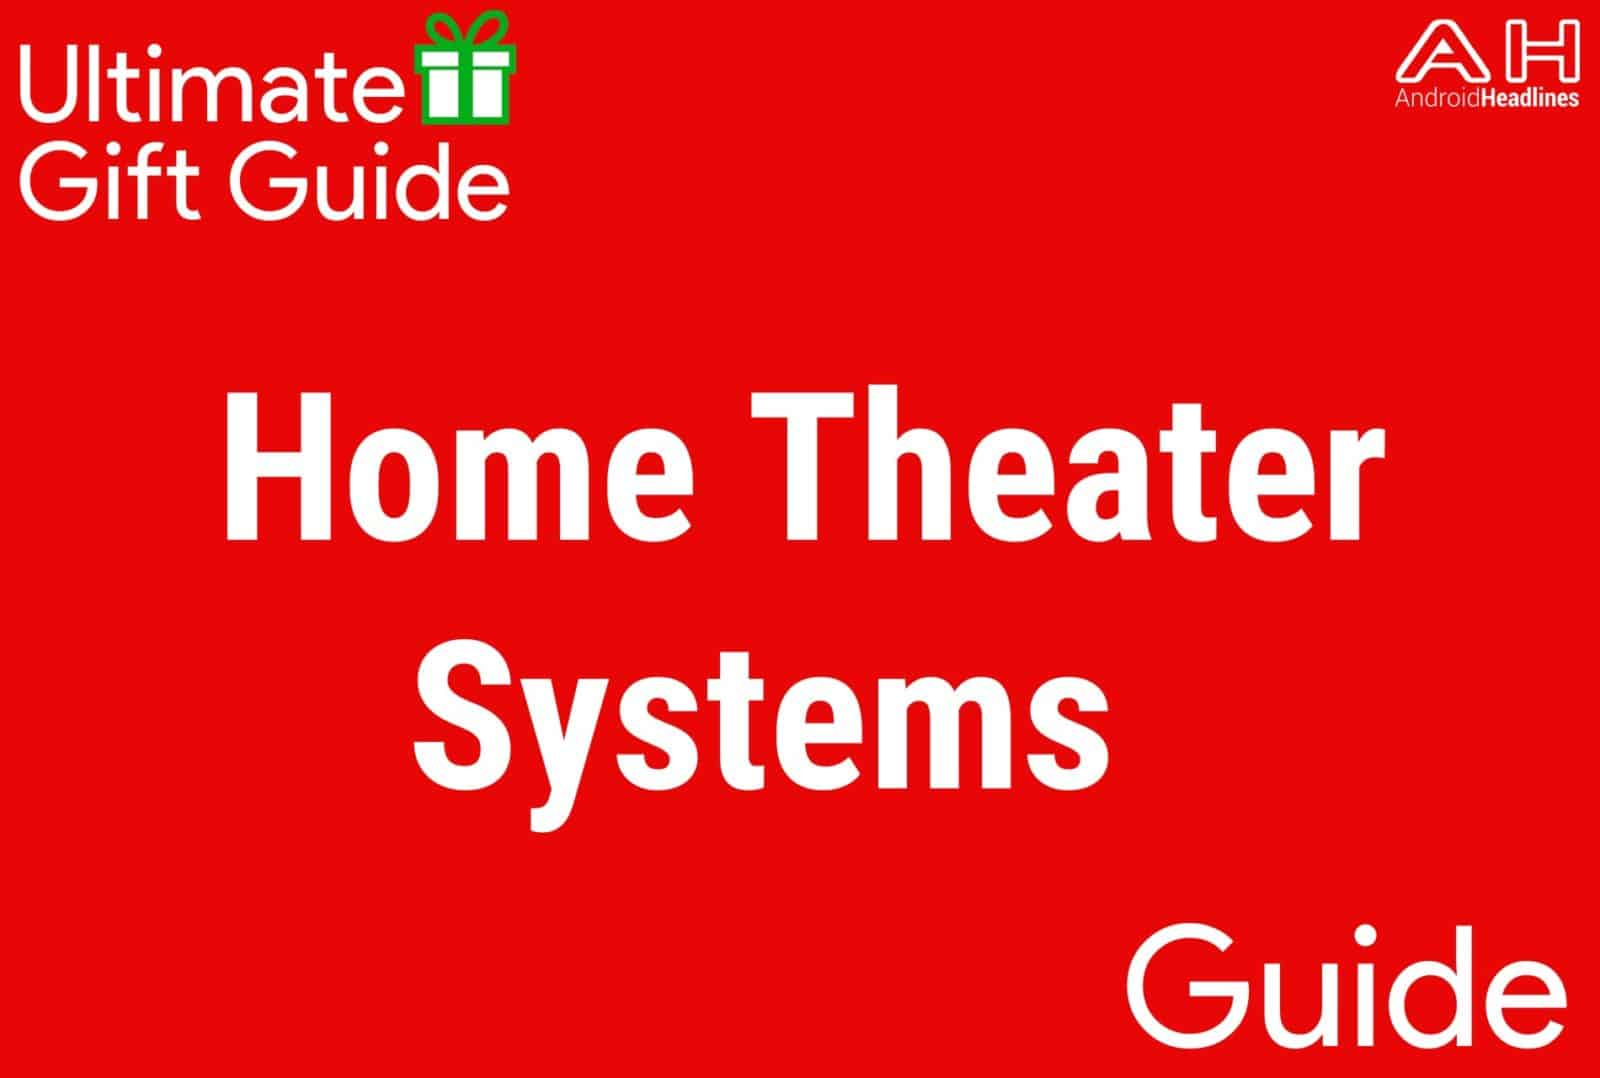 Home Theater Systems - Gift Guide 2015 2016